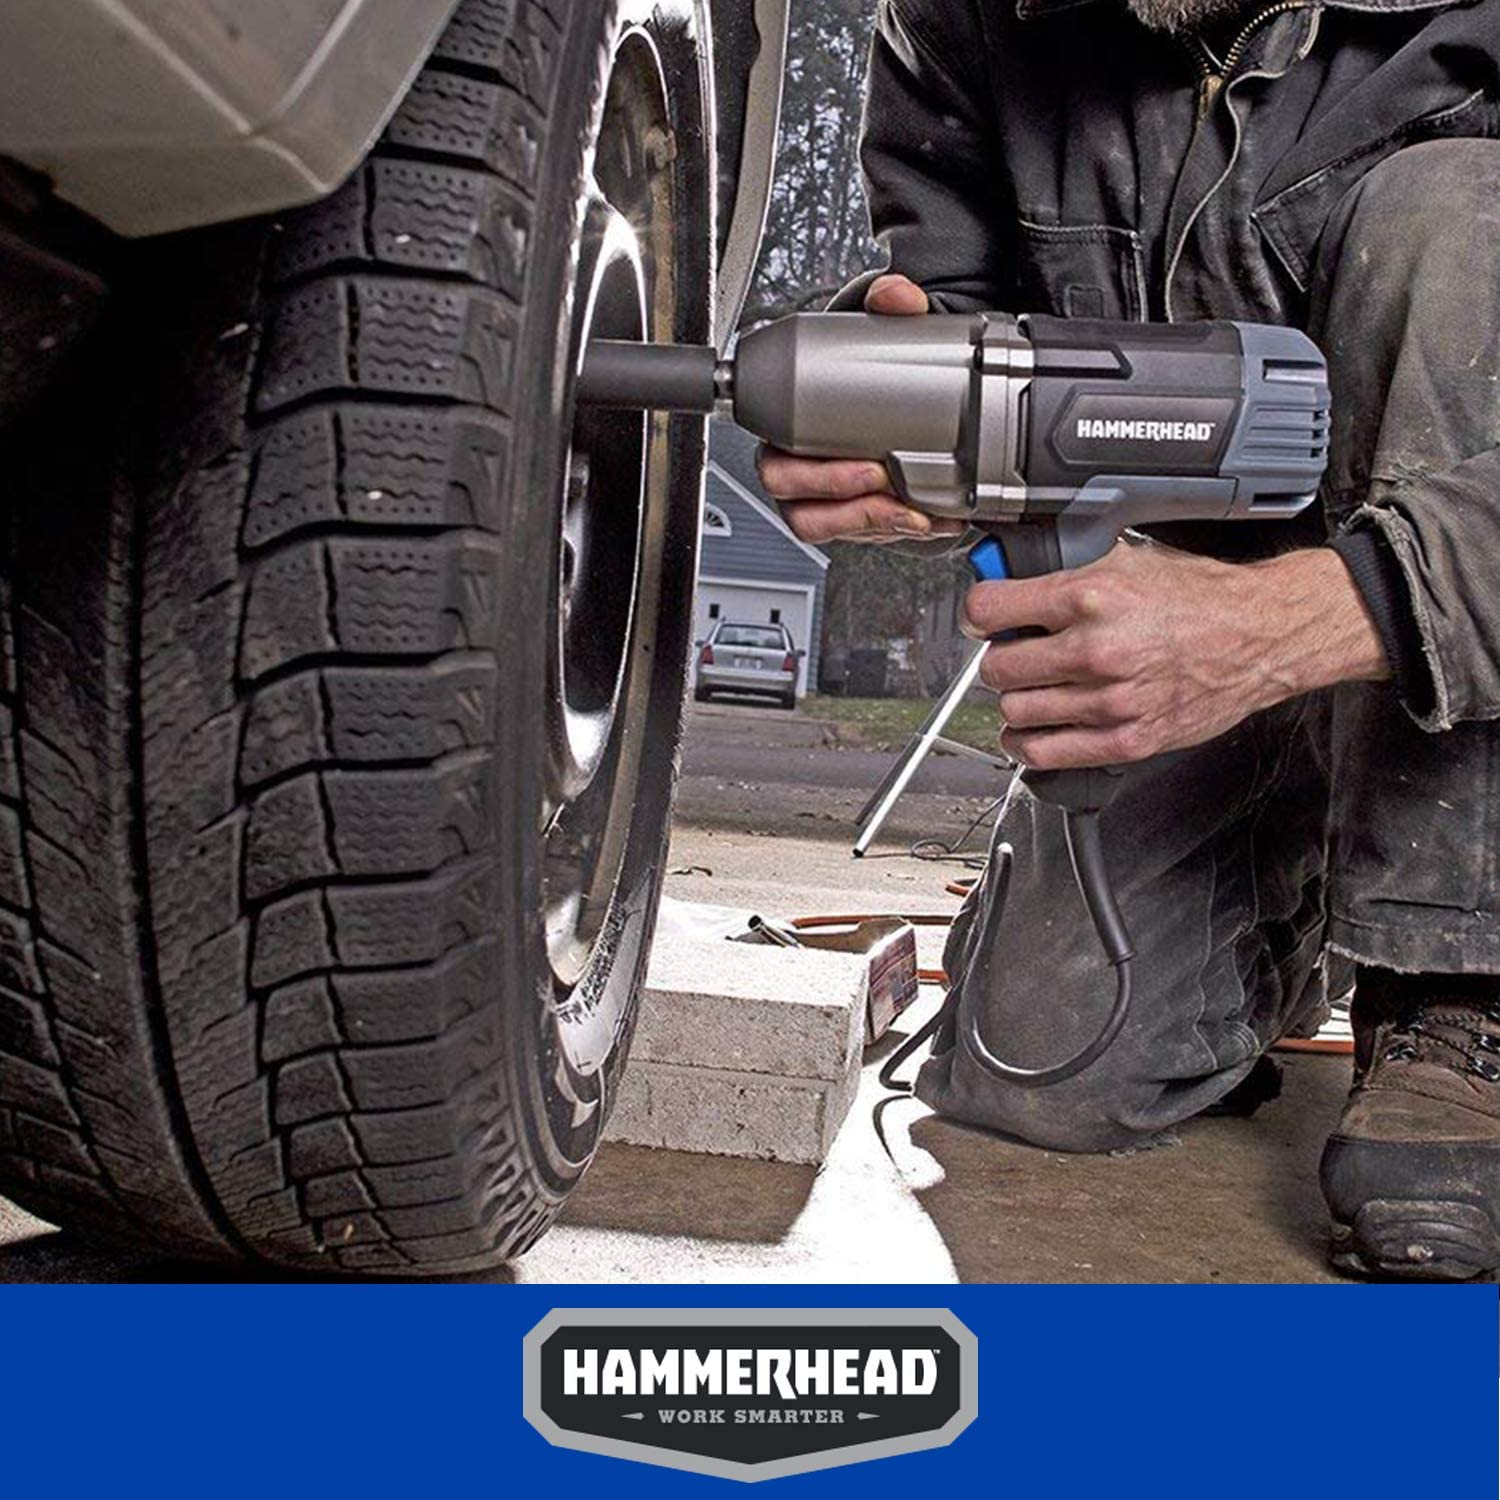 Hammerhead HDIW075 Impact Wrench for Tire Lug Nuts